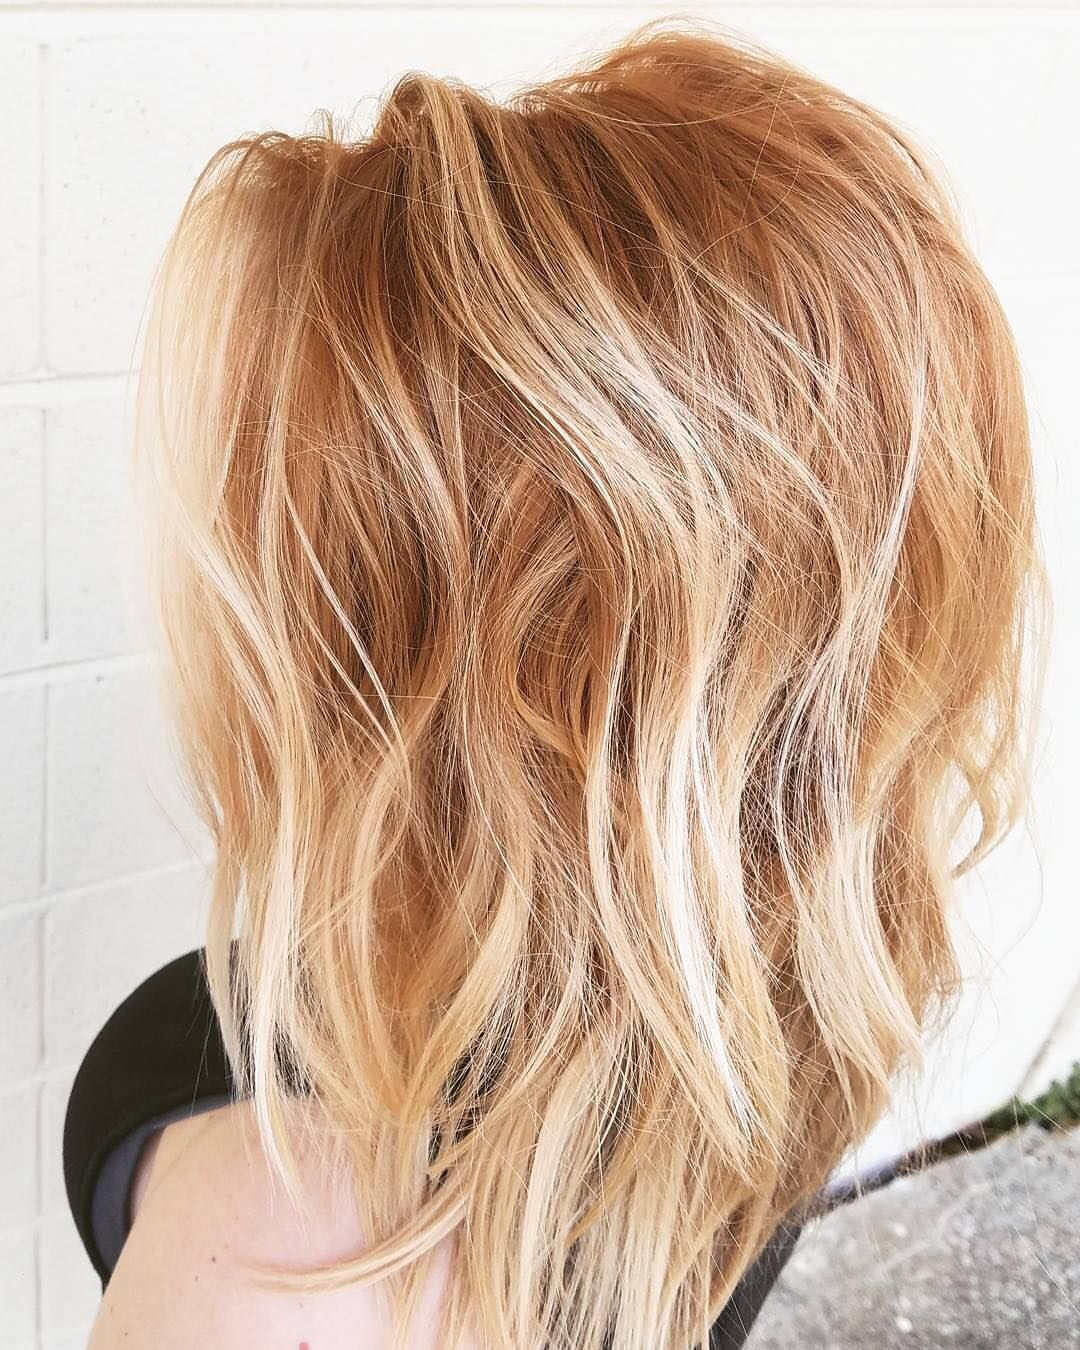 Coiffure Tresse Relief Tousled Strawberry Blonde Waves Huuur Pinterest